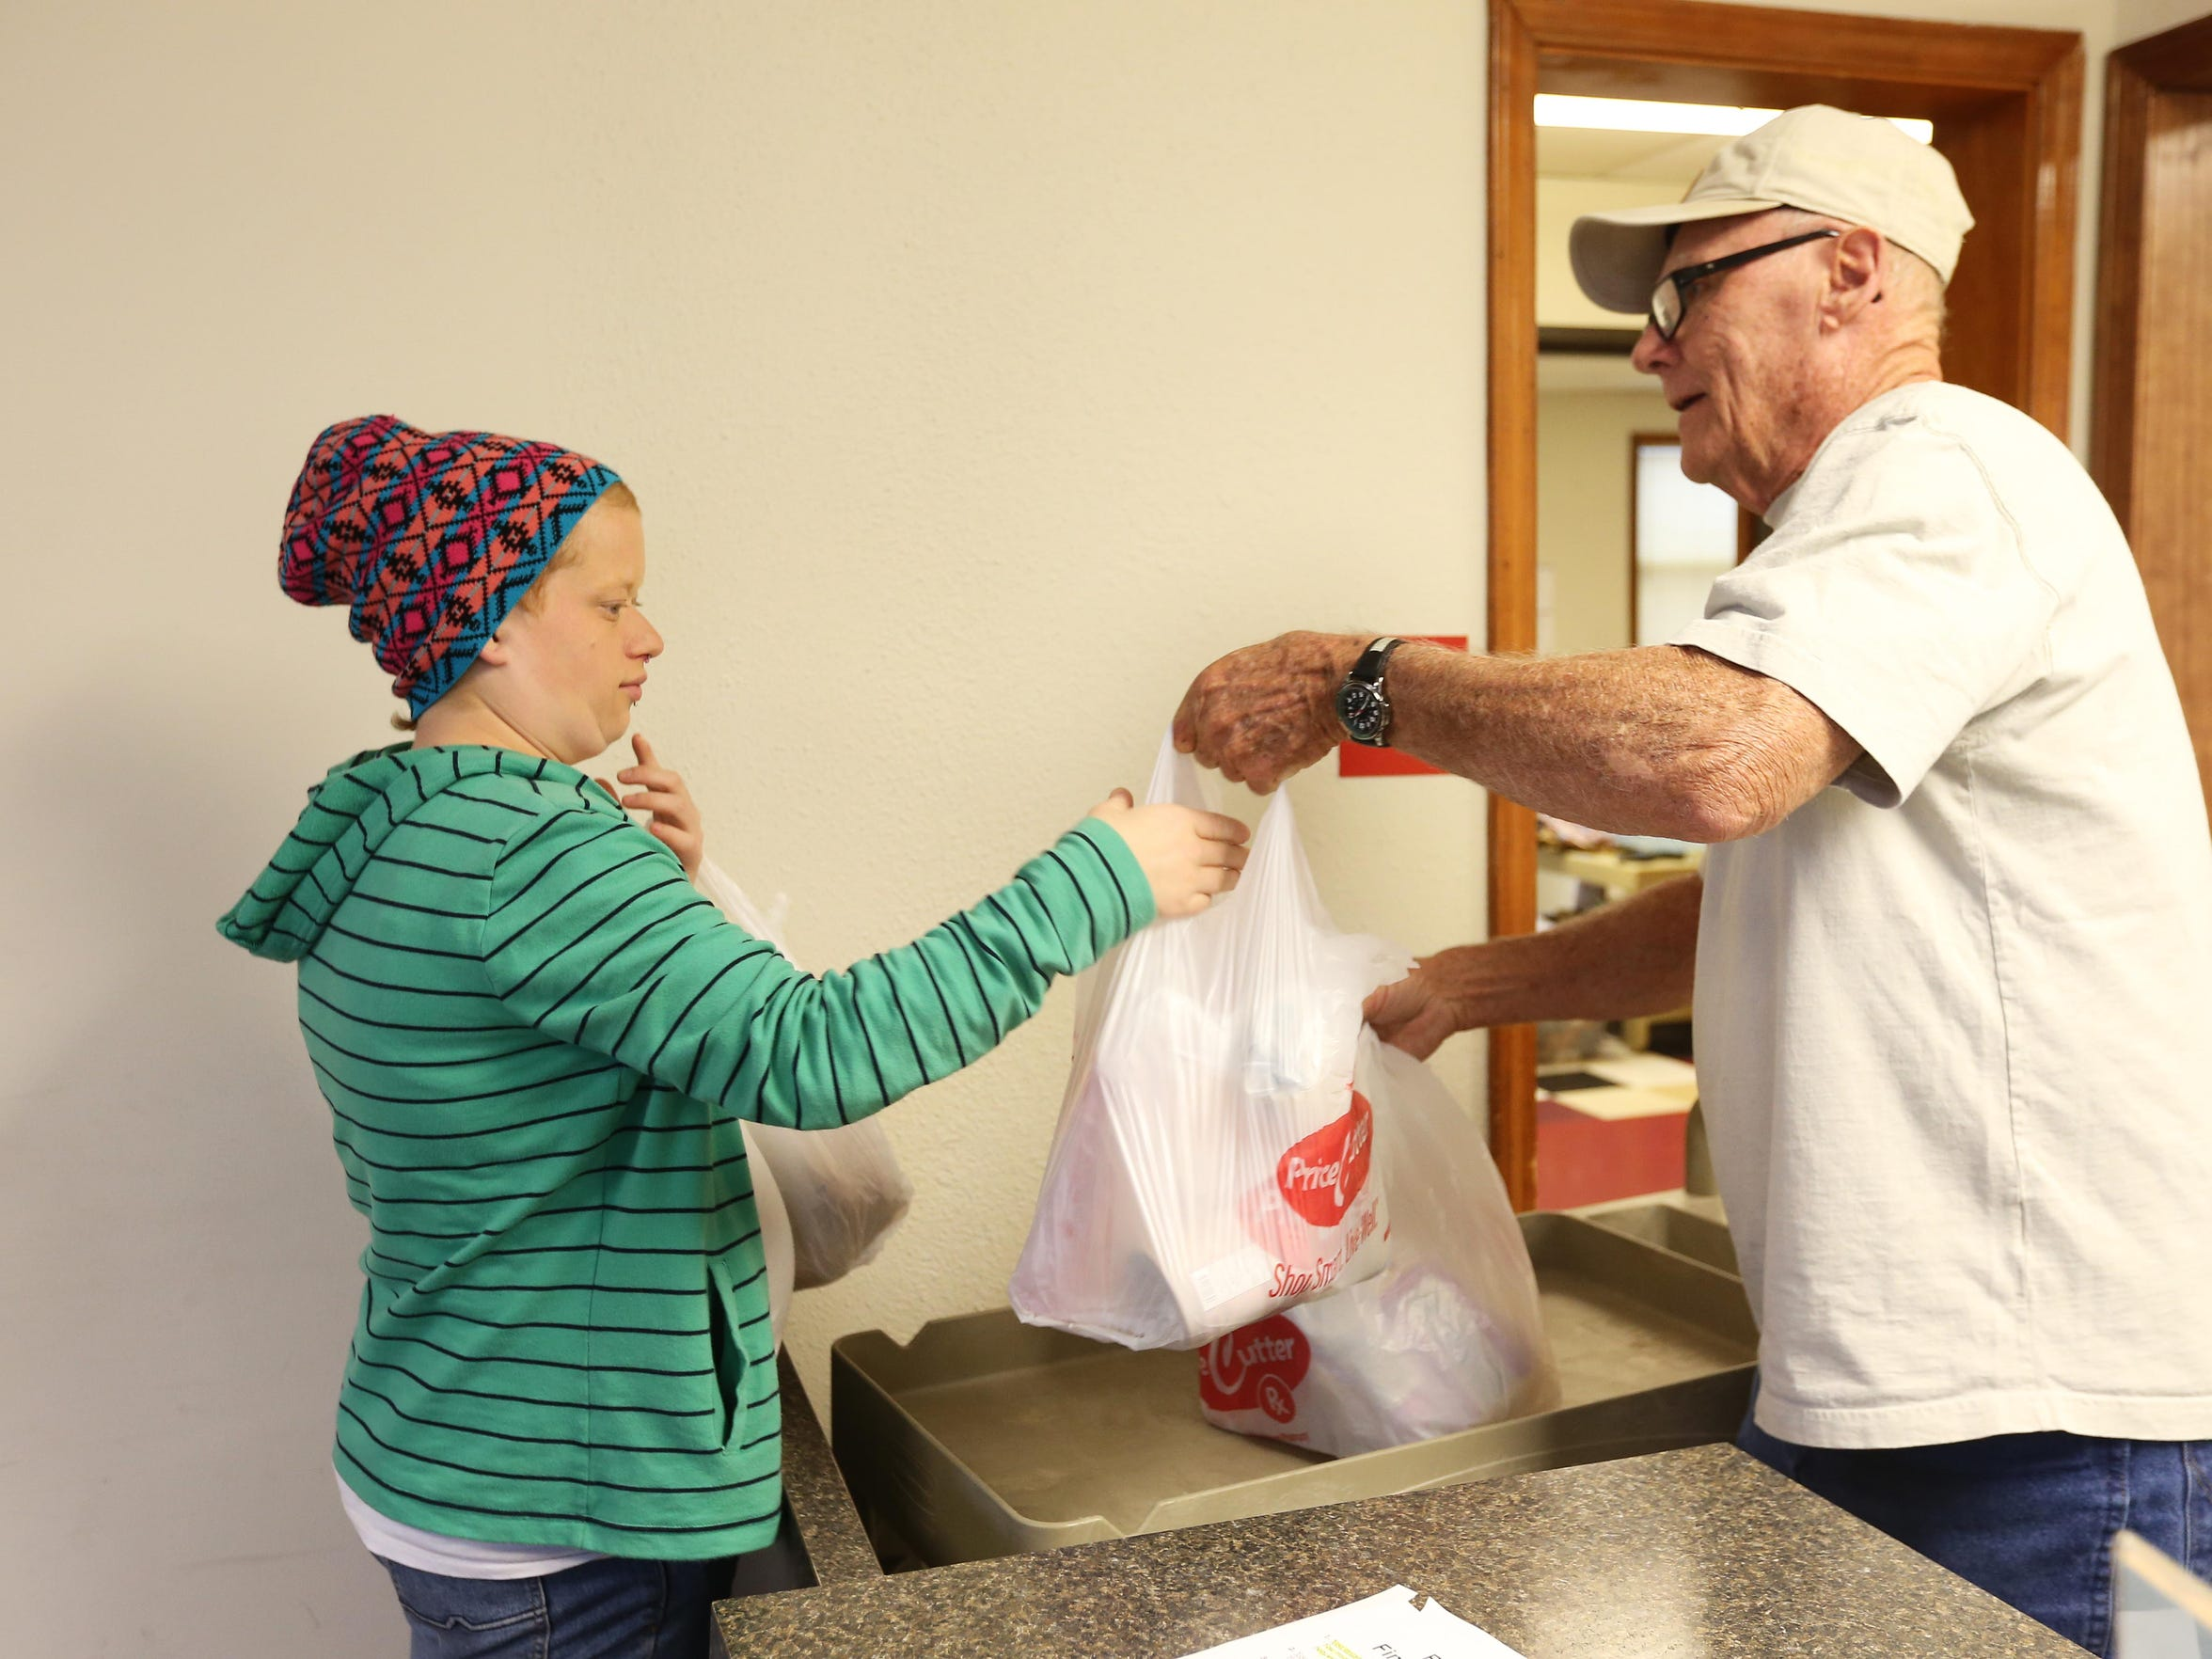 Lyzz Buford receives food from a volunteer at the Well